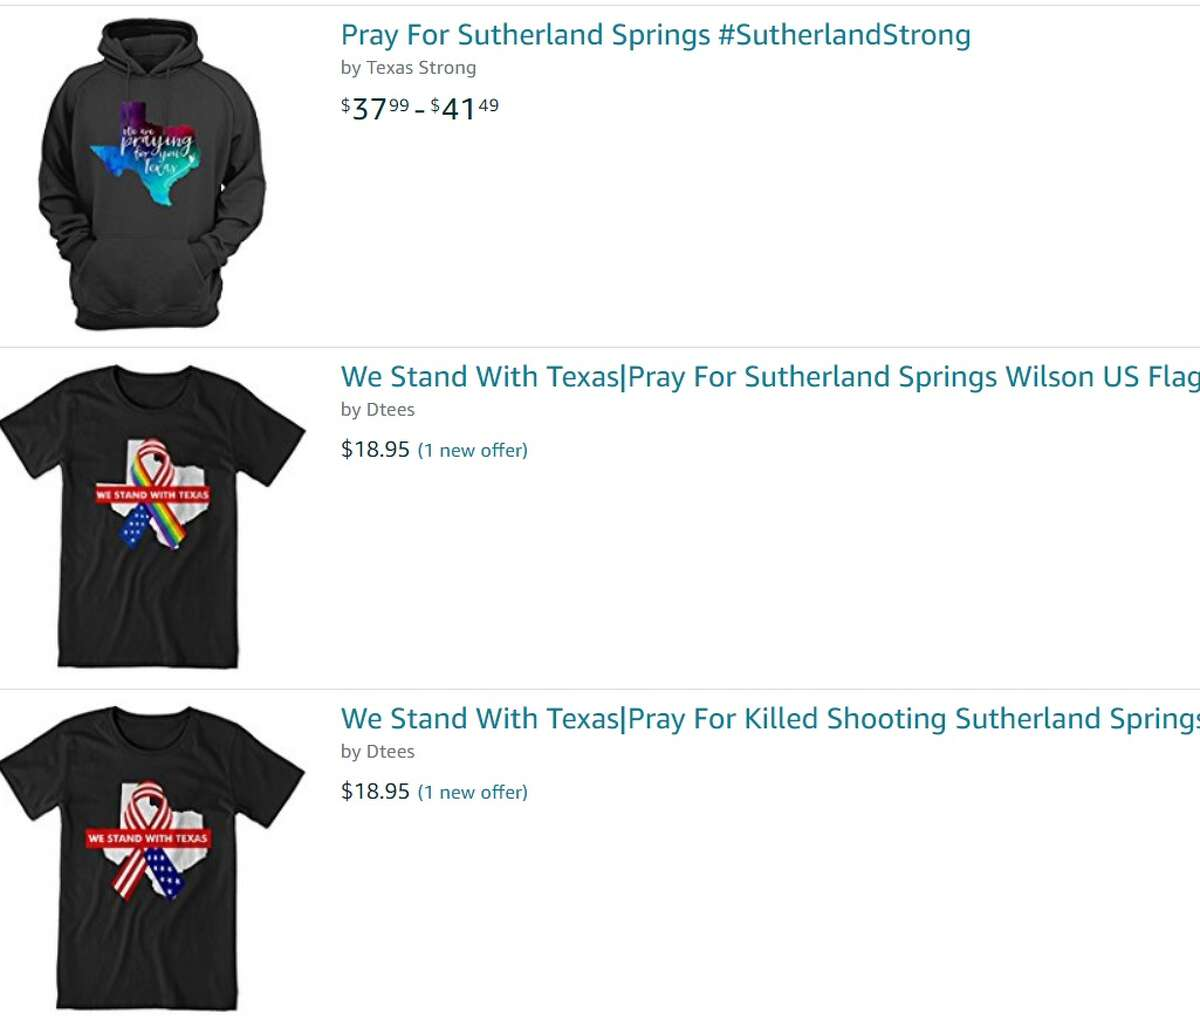 T-shirts and sweatshirts are for sale just four days after the Sutherland Springs church shooting on Nov. 5, 2017.